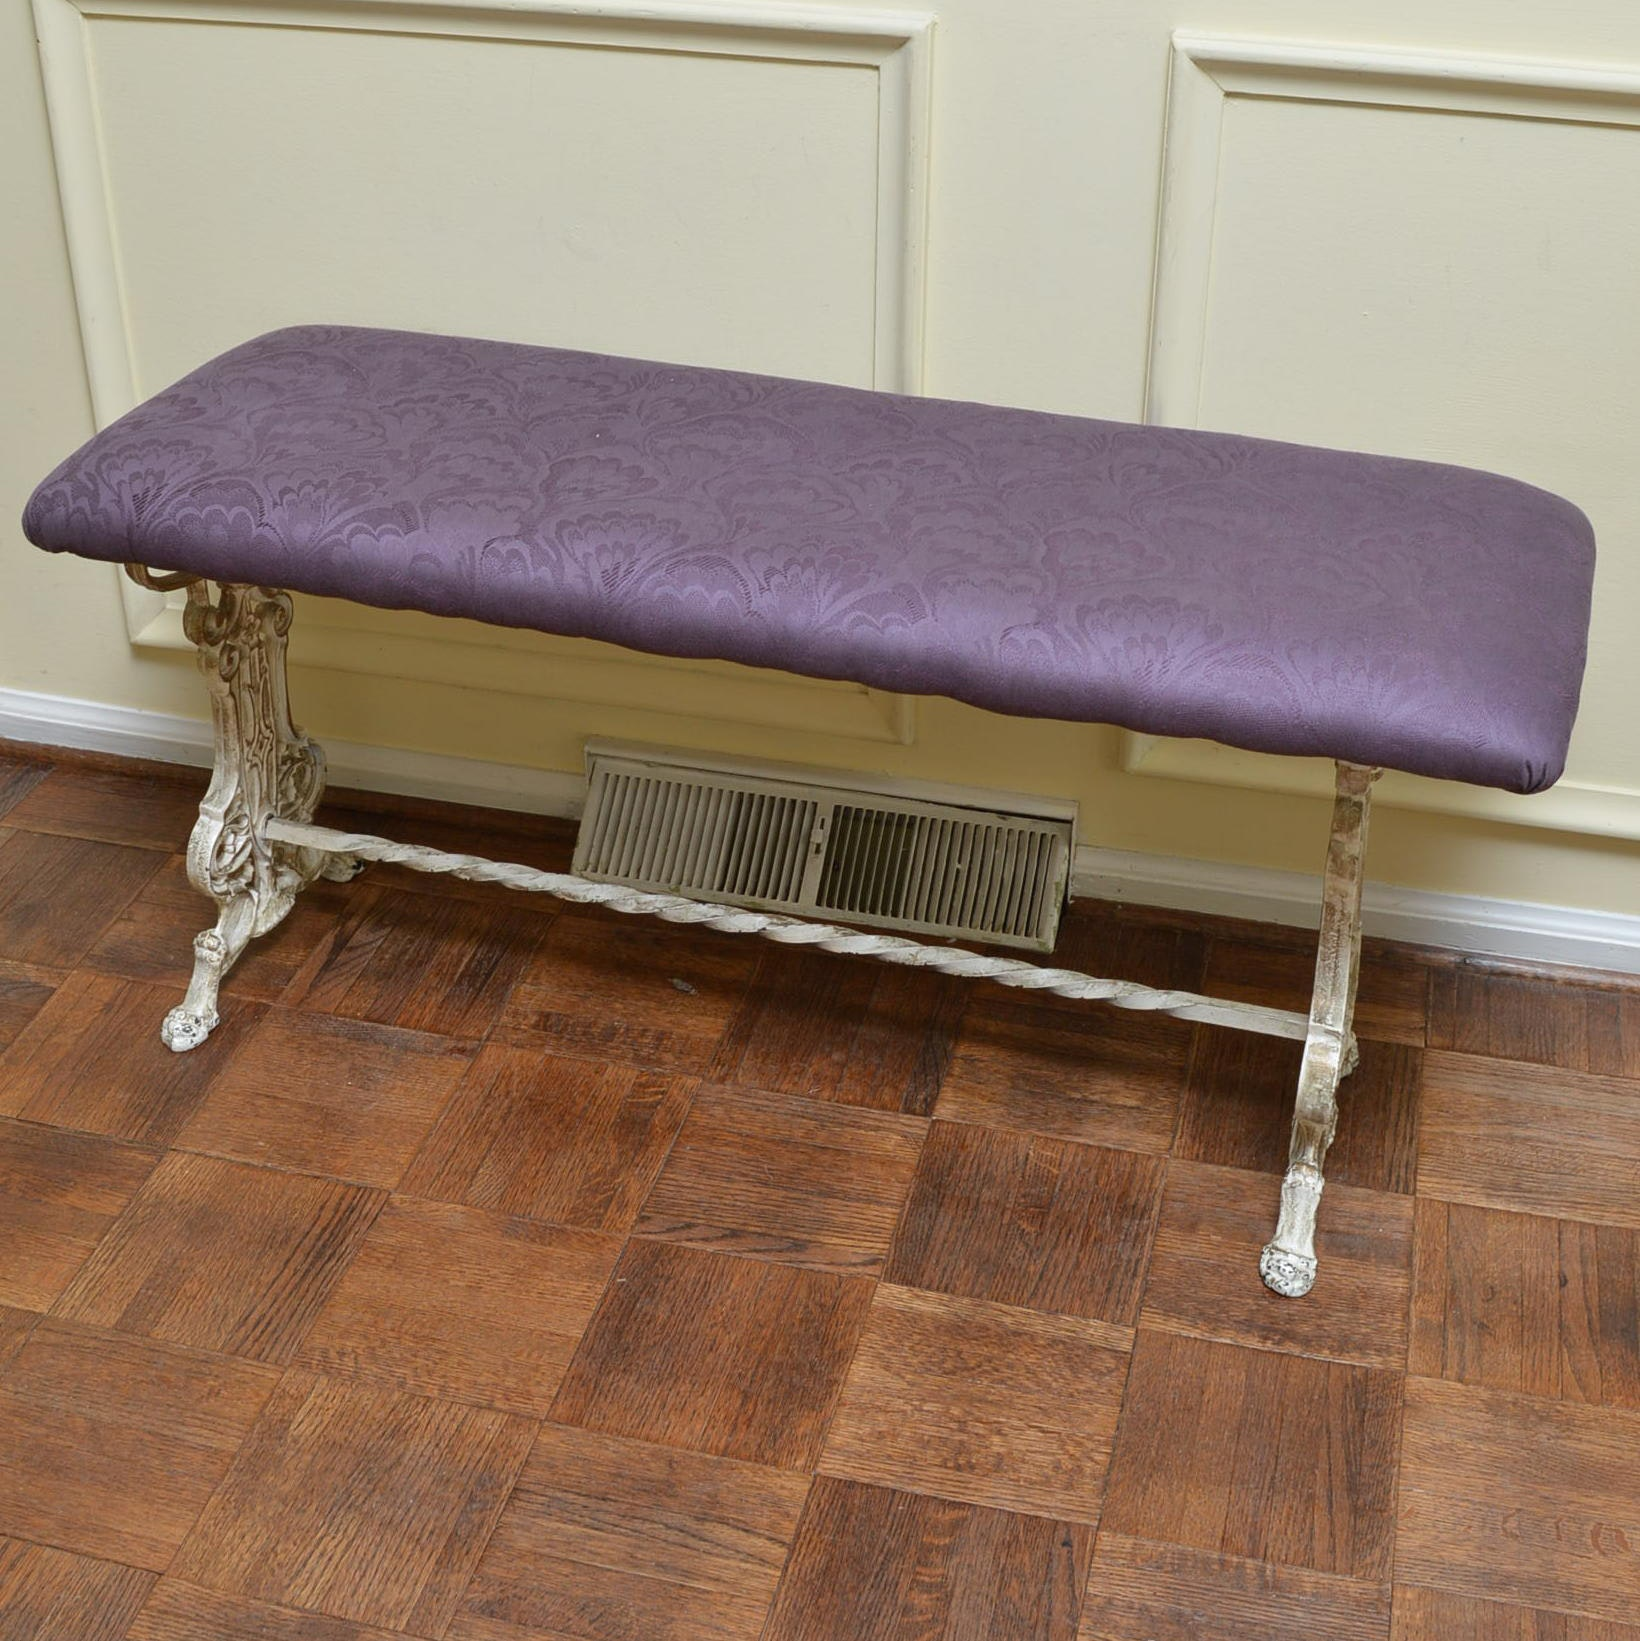 Vintage Upholstered Iron Bench